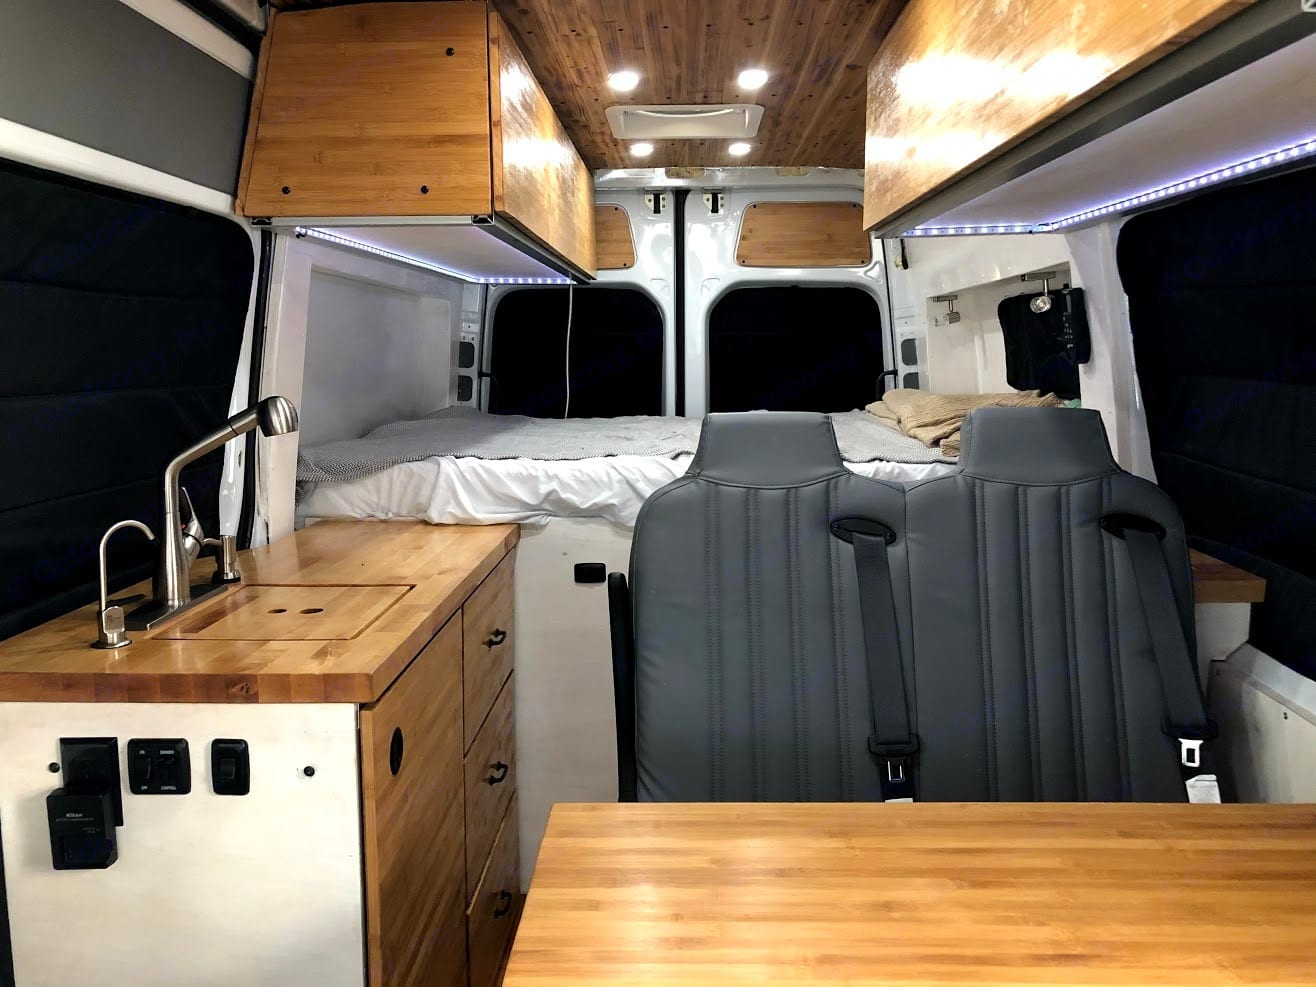 Insulated black out window covers for extra comfort and privacy!. Mercedes-Benz Sprinter 2018